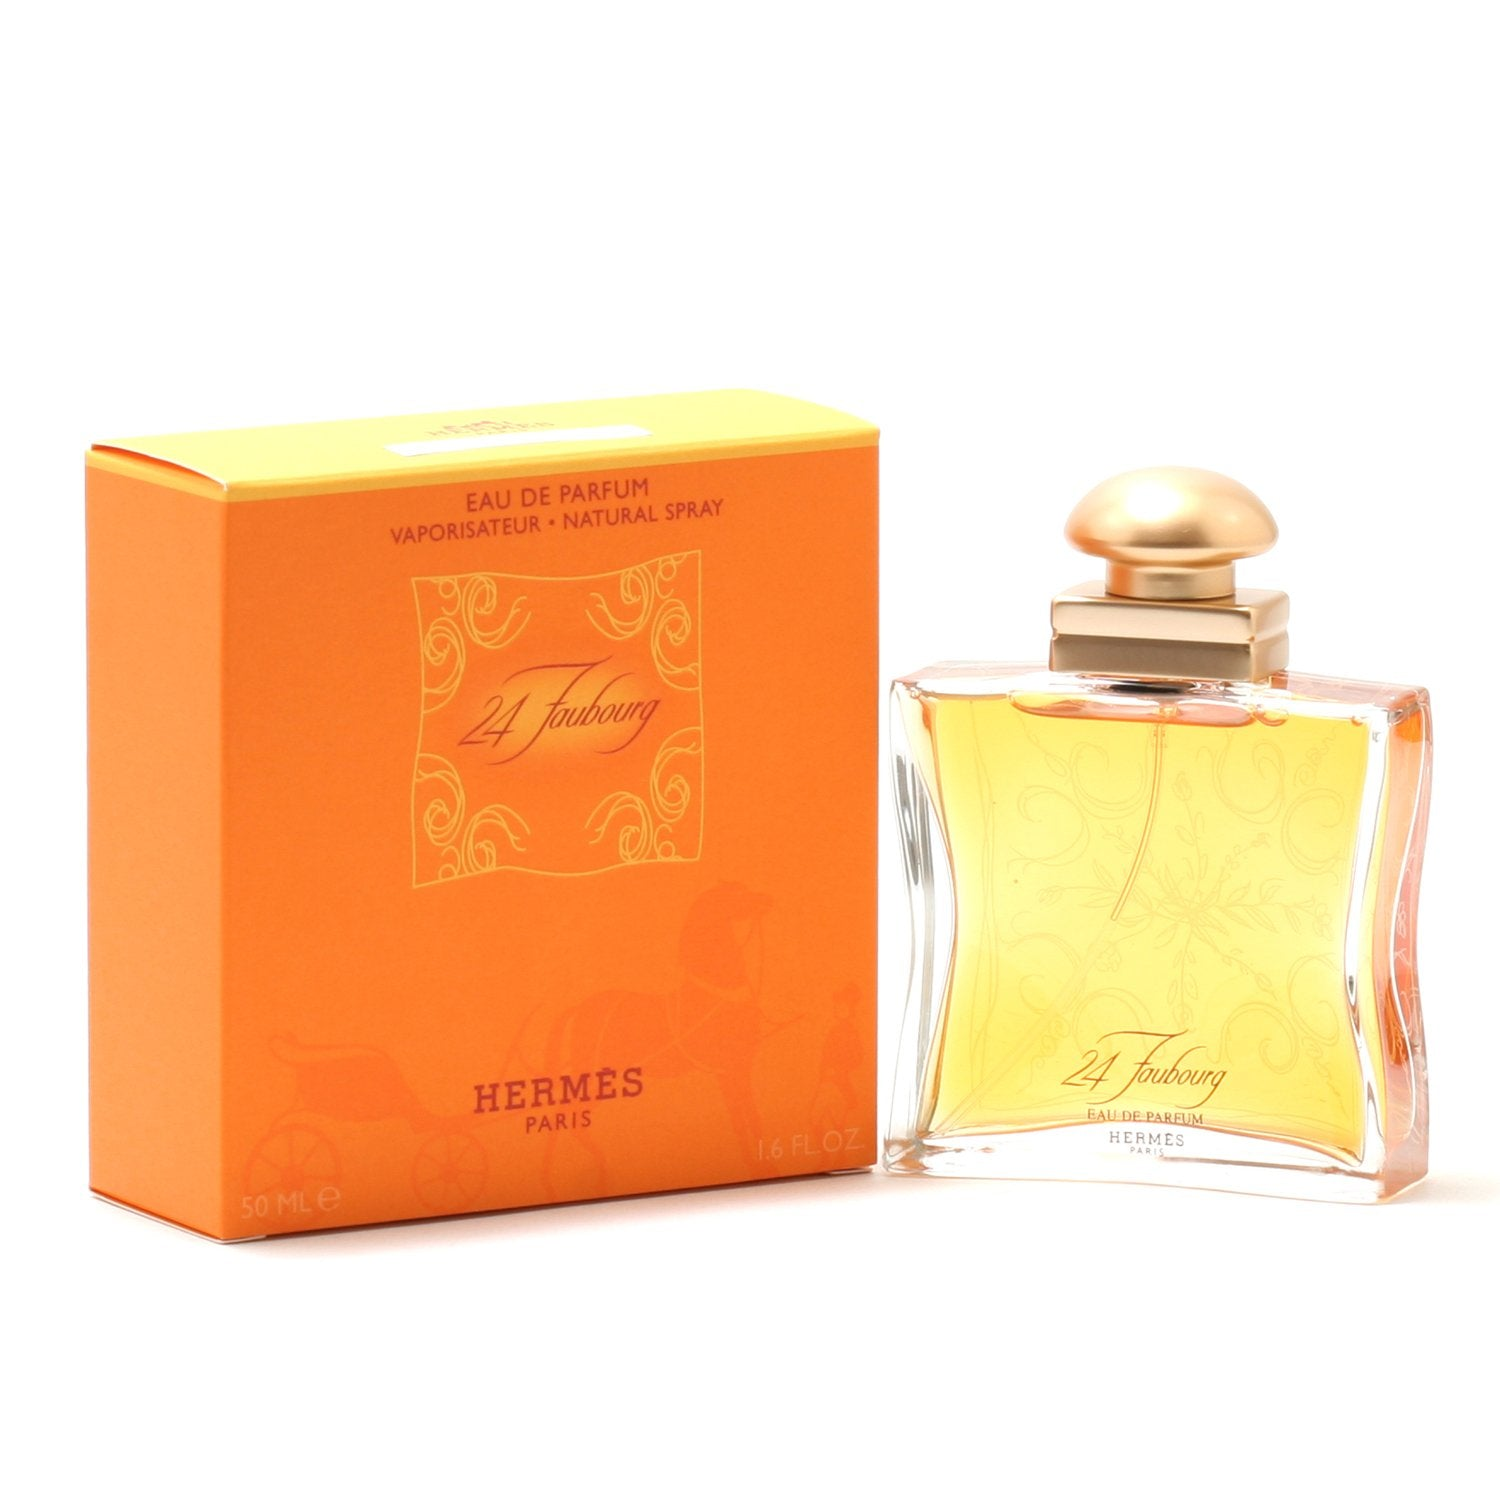 Perfume - 24 FAUBOURG FOR WOMEN BY HERMES - EAU DE PARFUM SPRAY, 1.6 OZ